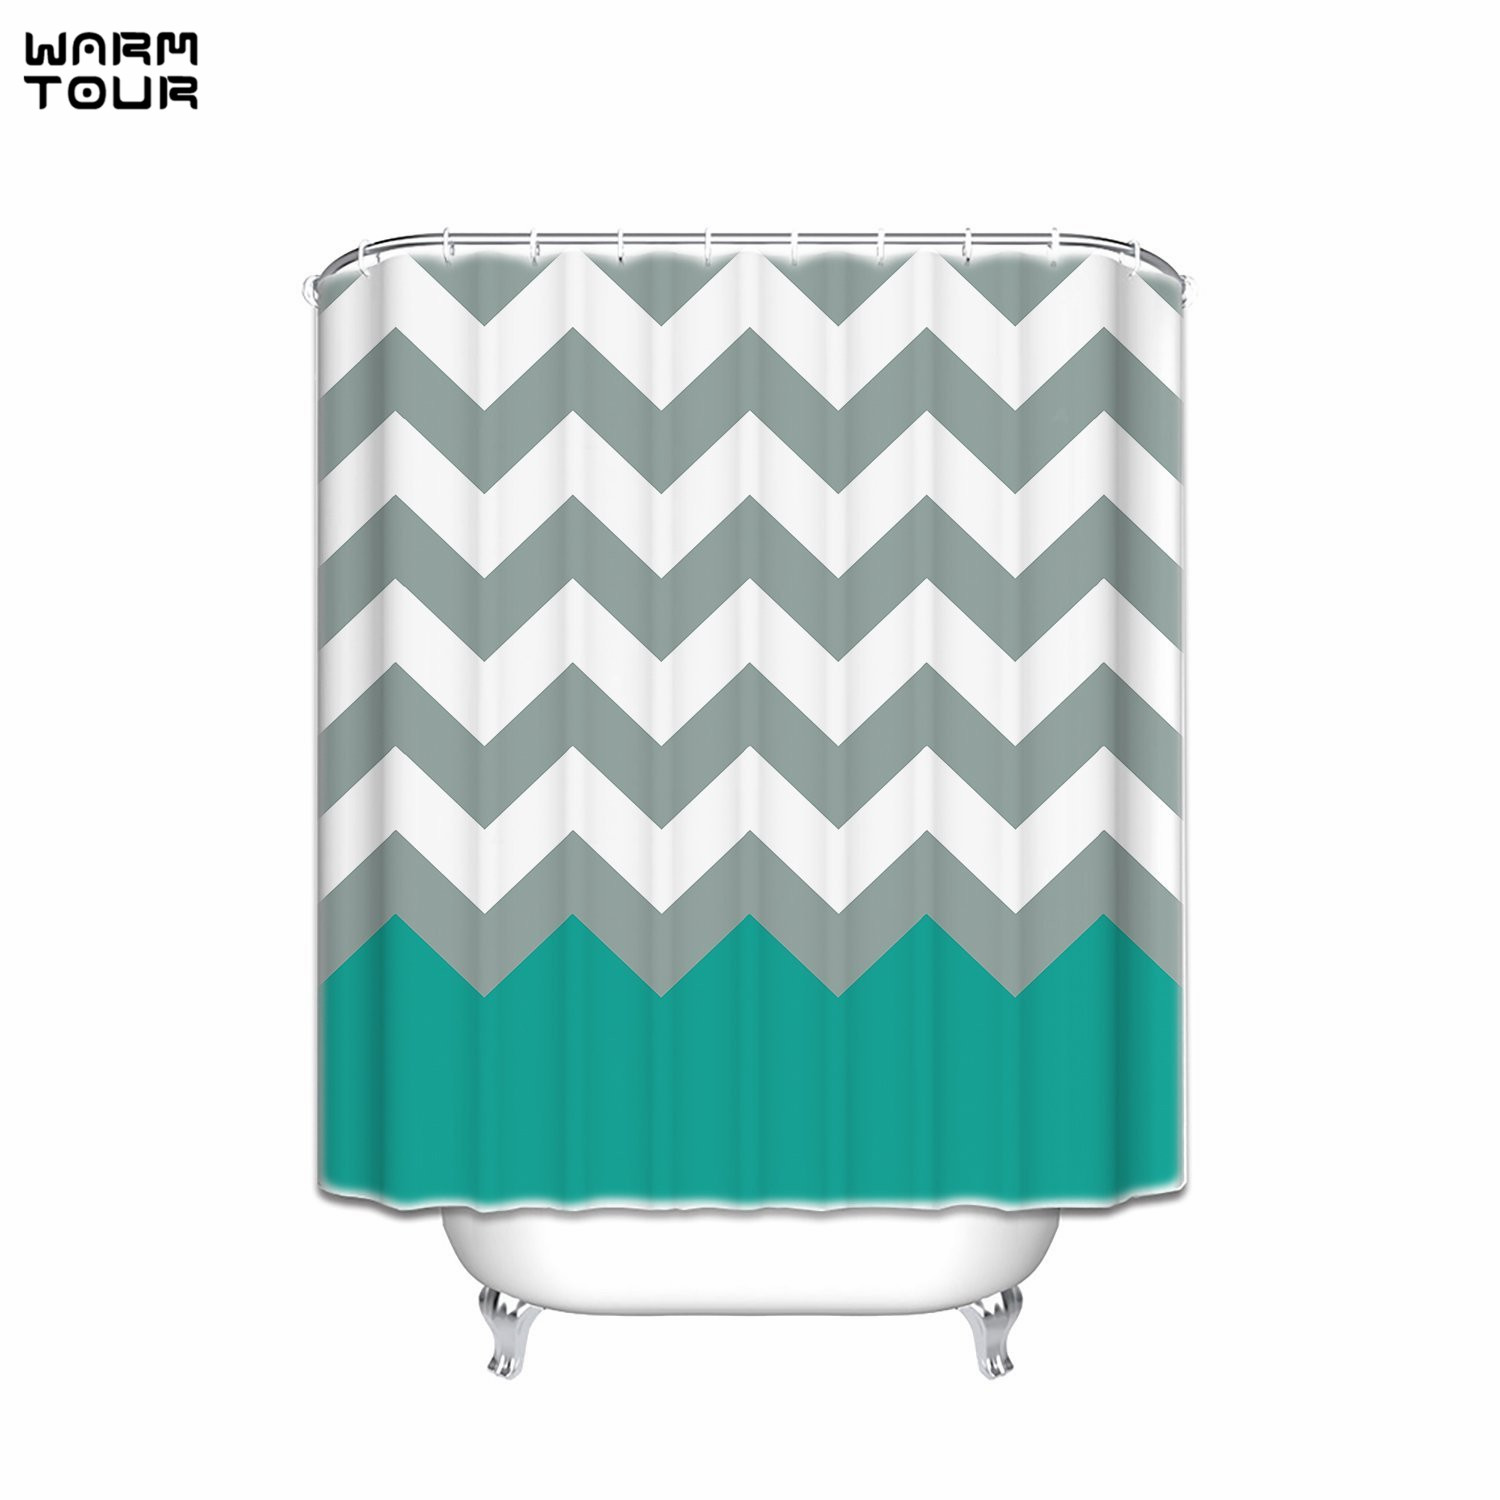 Aqua Chevron Shower Curtain - Warm tour love forever love symbol chevron pattern pink grey white waterproof bathroom fabric shower curtain